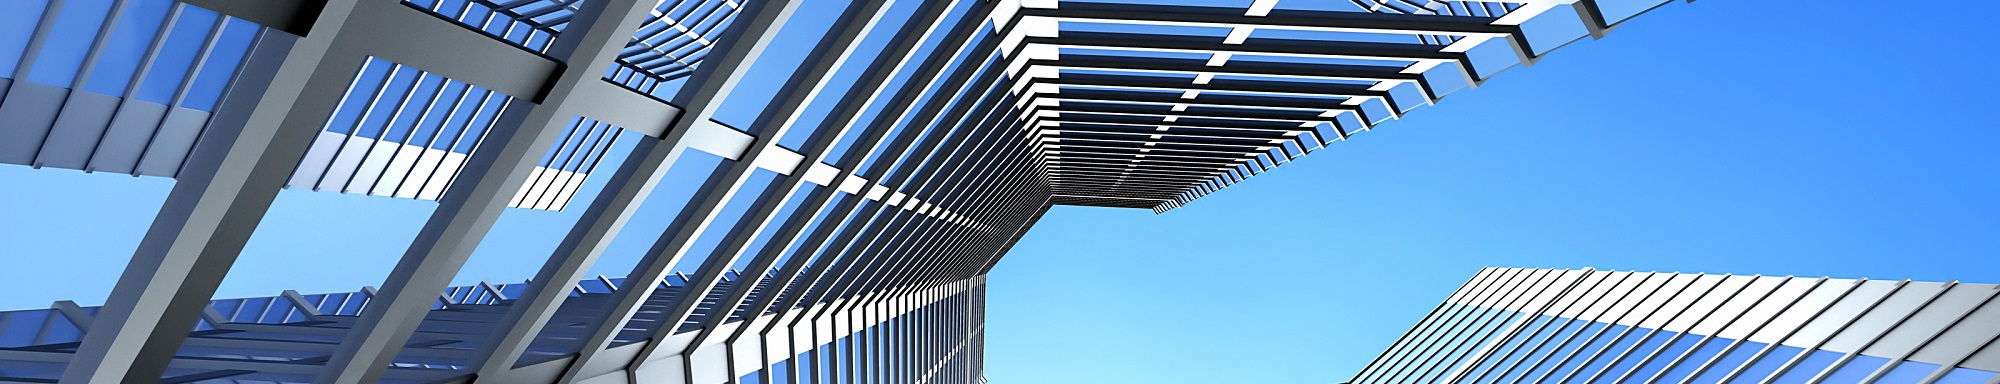 Office building on a background of the blue sky